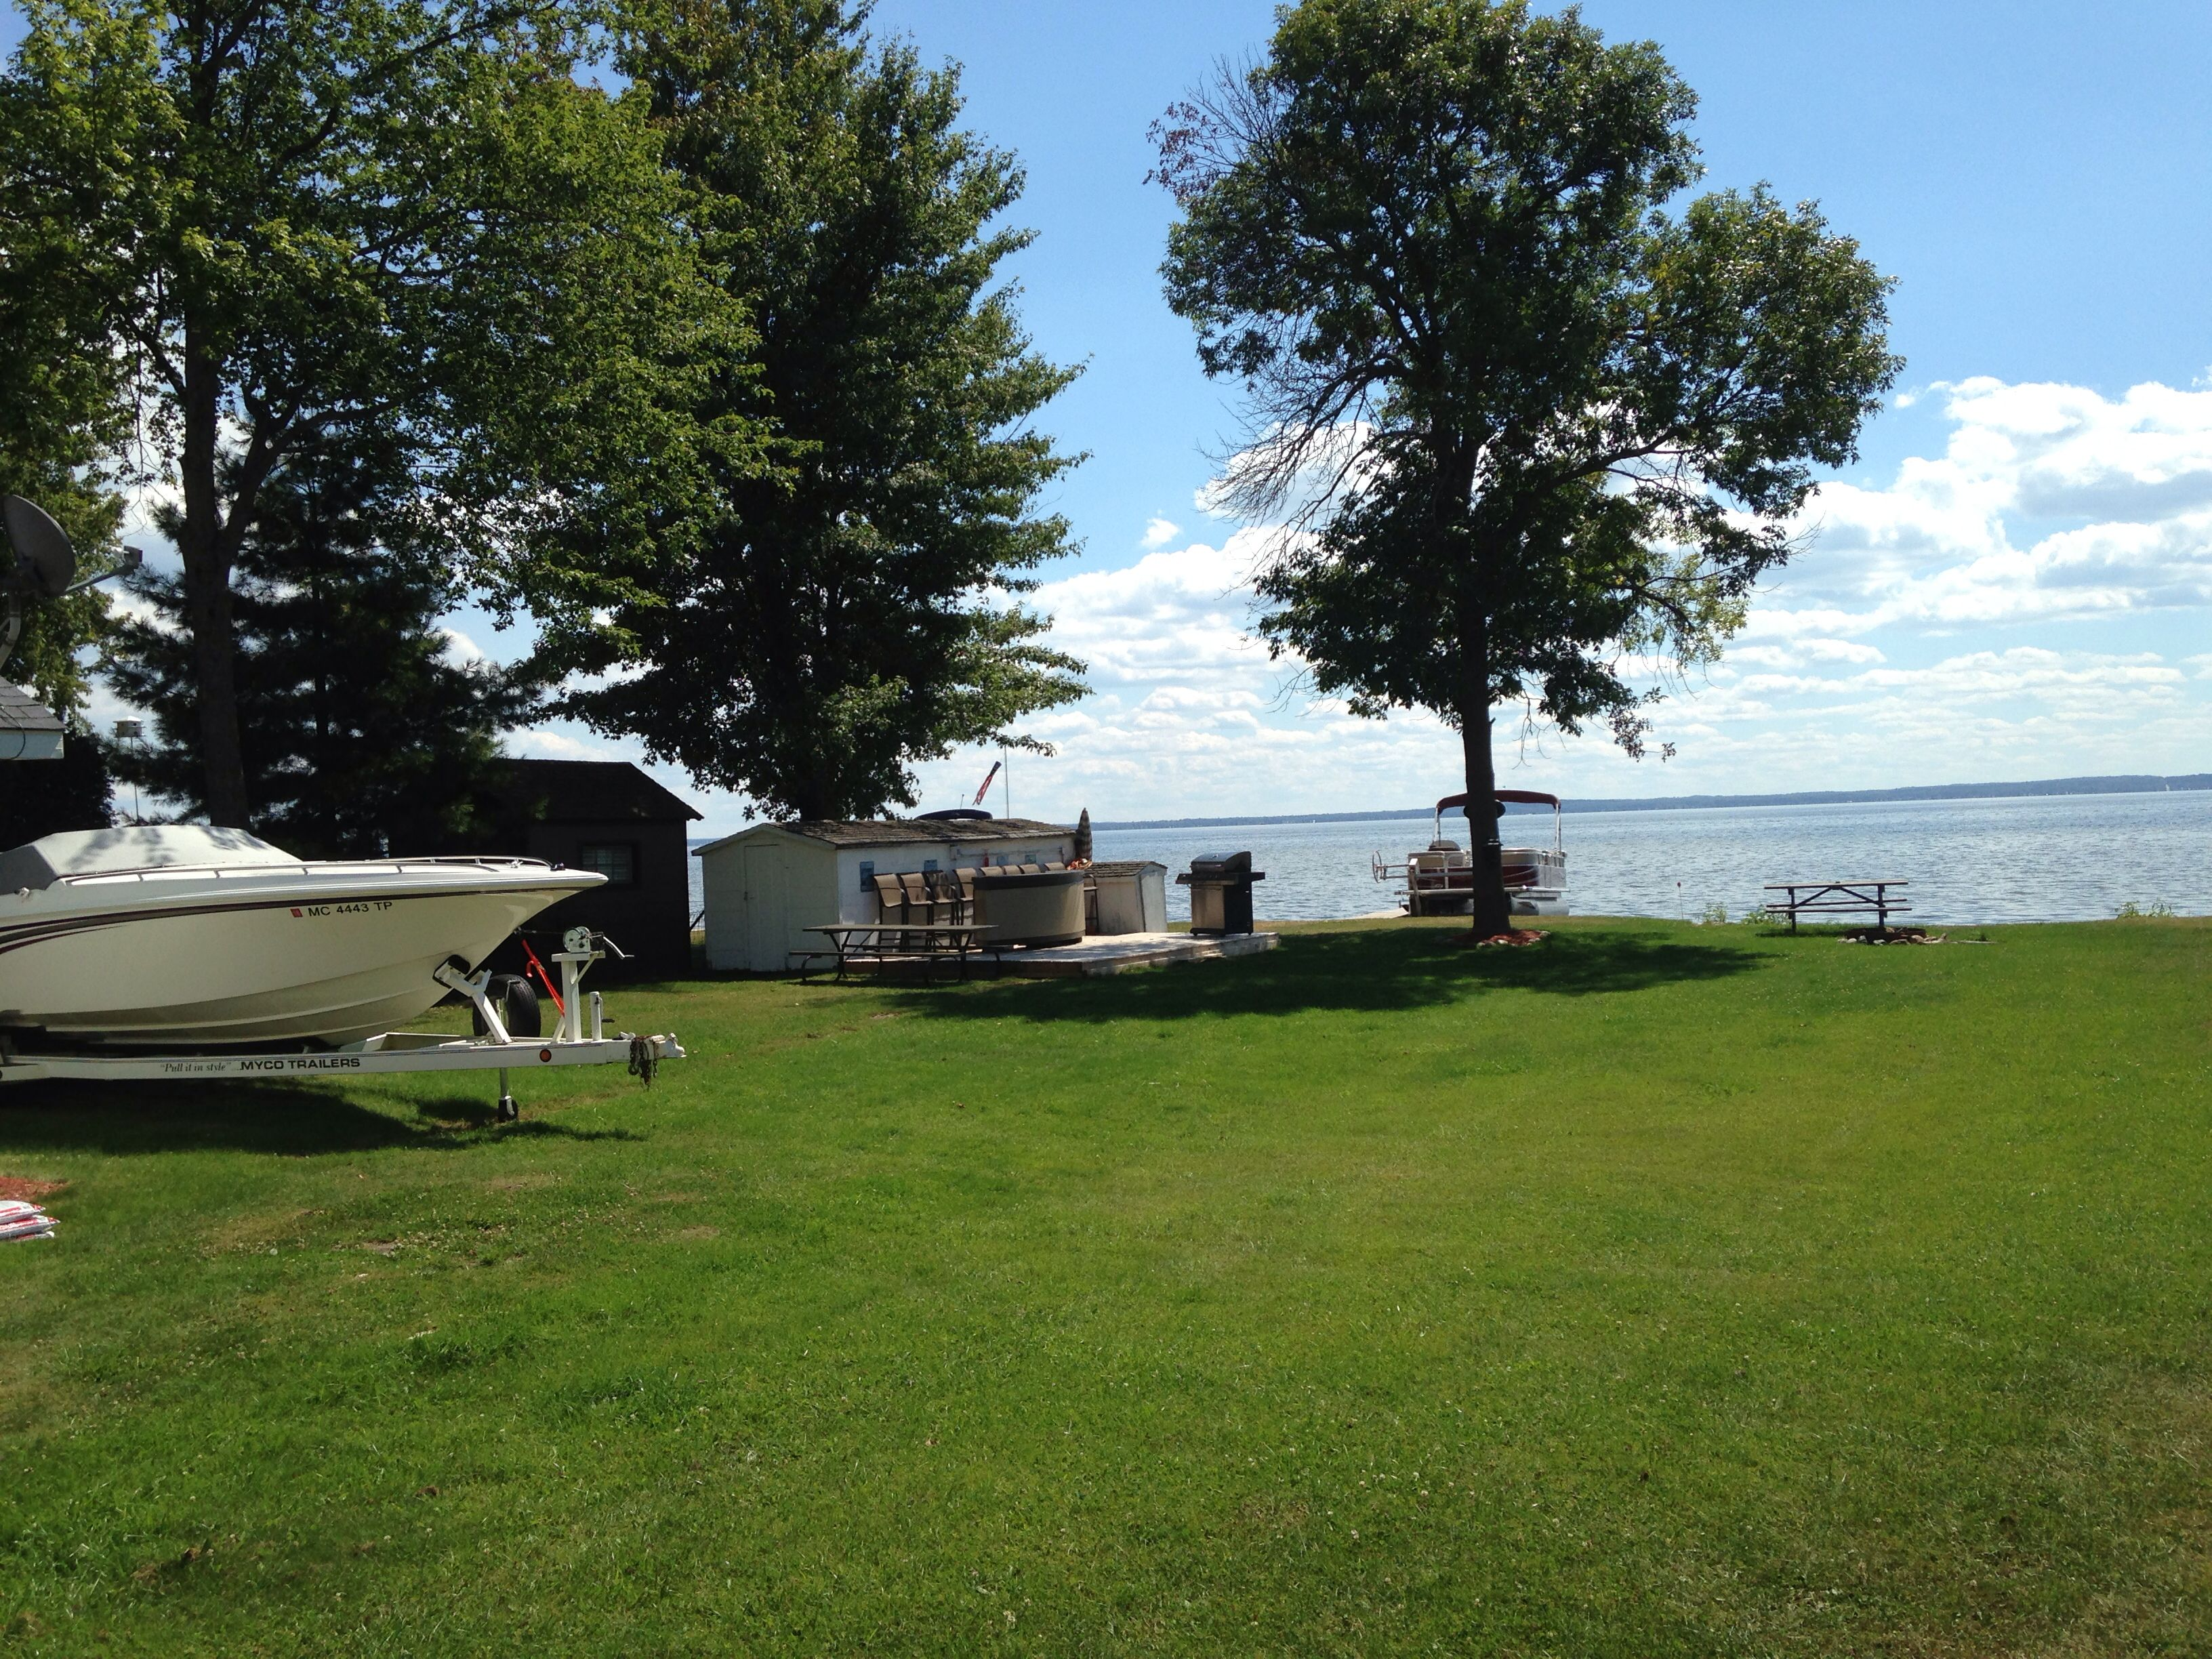 of cabins in northern lake cabin houghton lodge michigan also house pleasing shu rental slo rentals